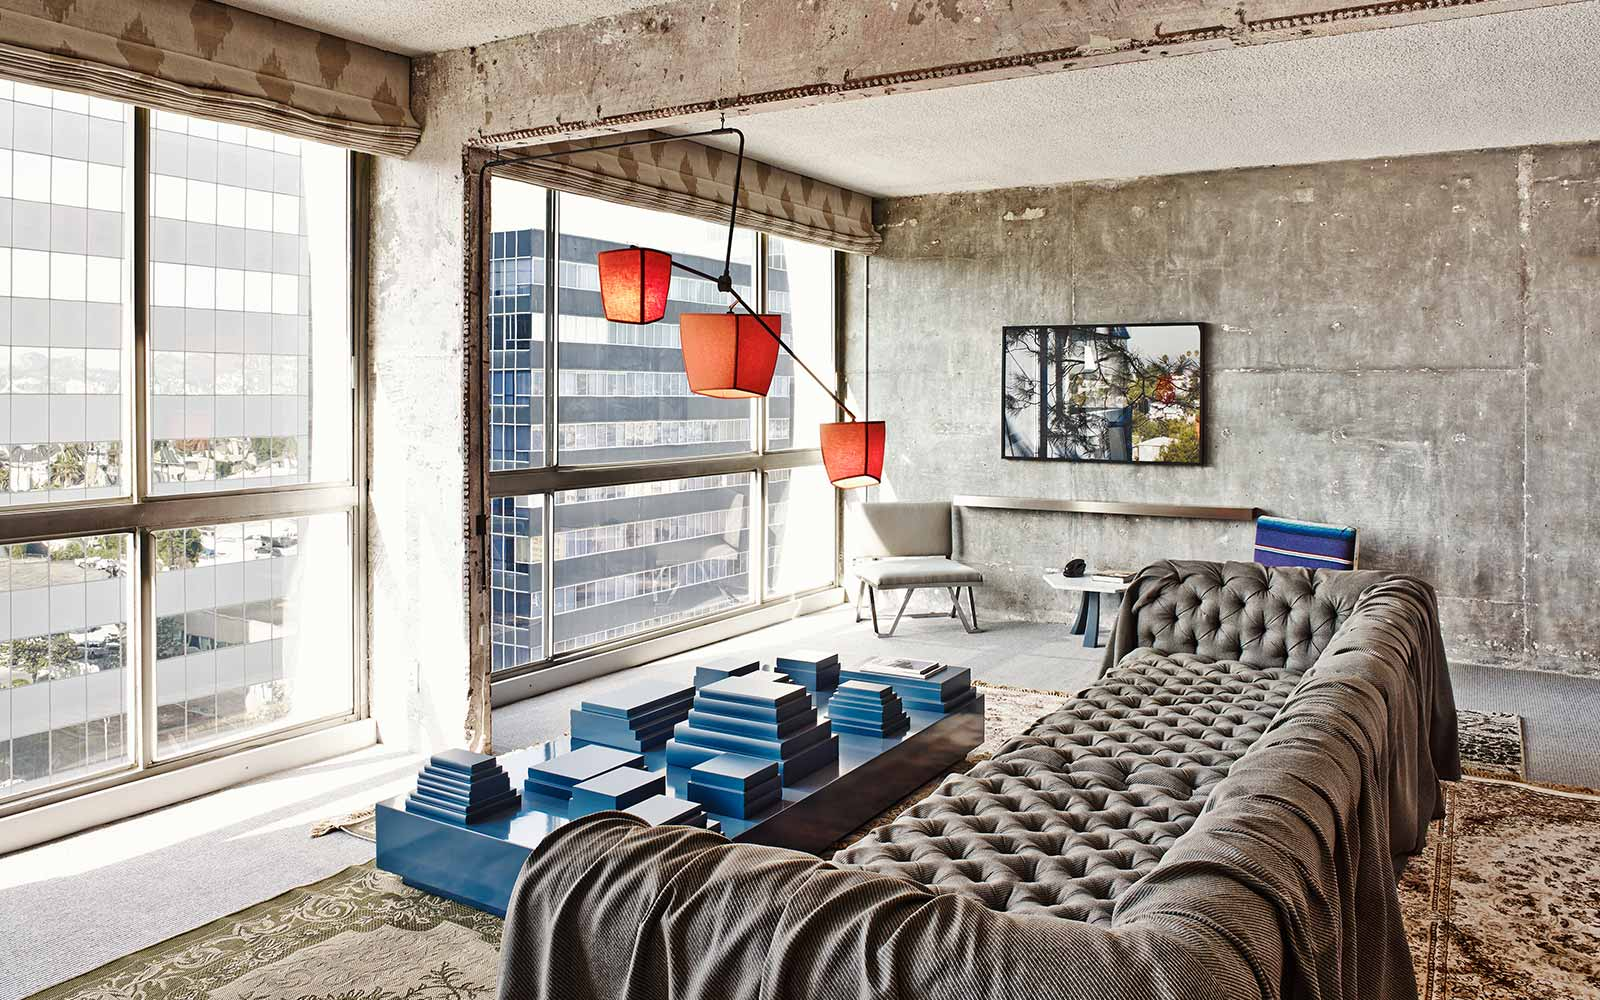 The Line Hotel - Room / Knibb Design (3)